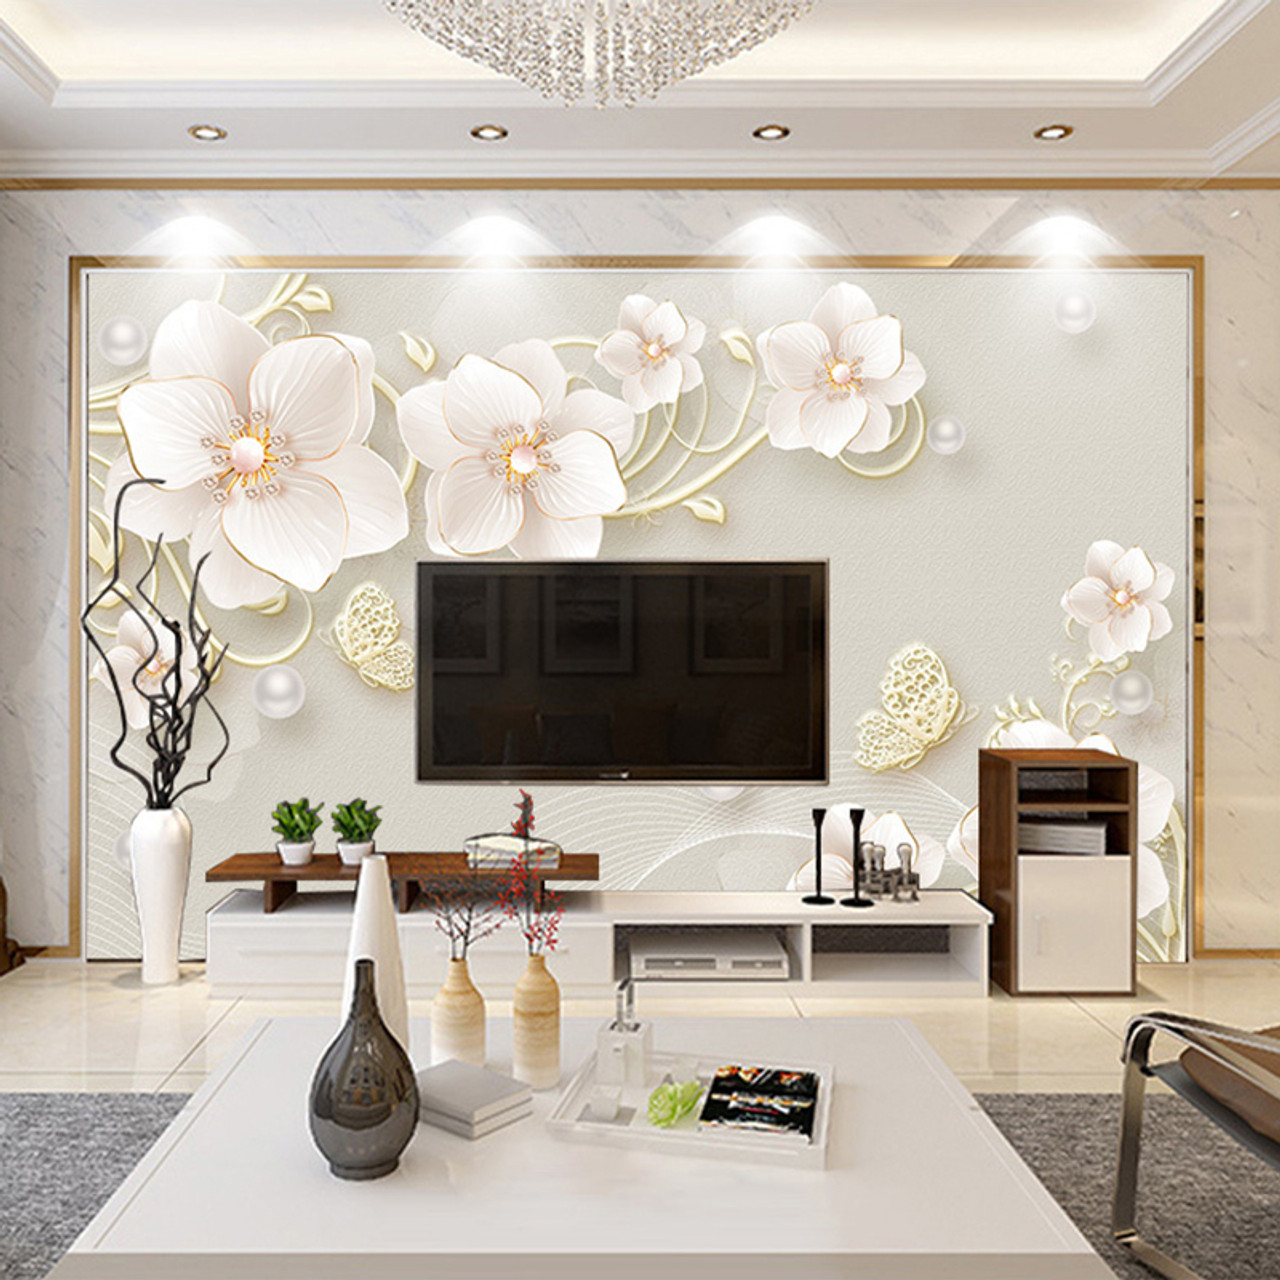 Custom Mural Wallpaper 3d Stereo Relief Jewelry Flower Modern Simple European Style Living Room Tv Background Photo Wall Paper Onshopdeals Com